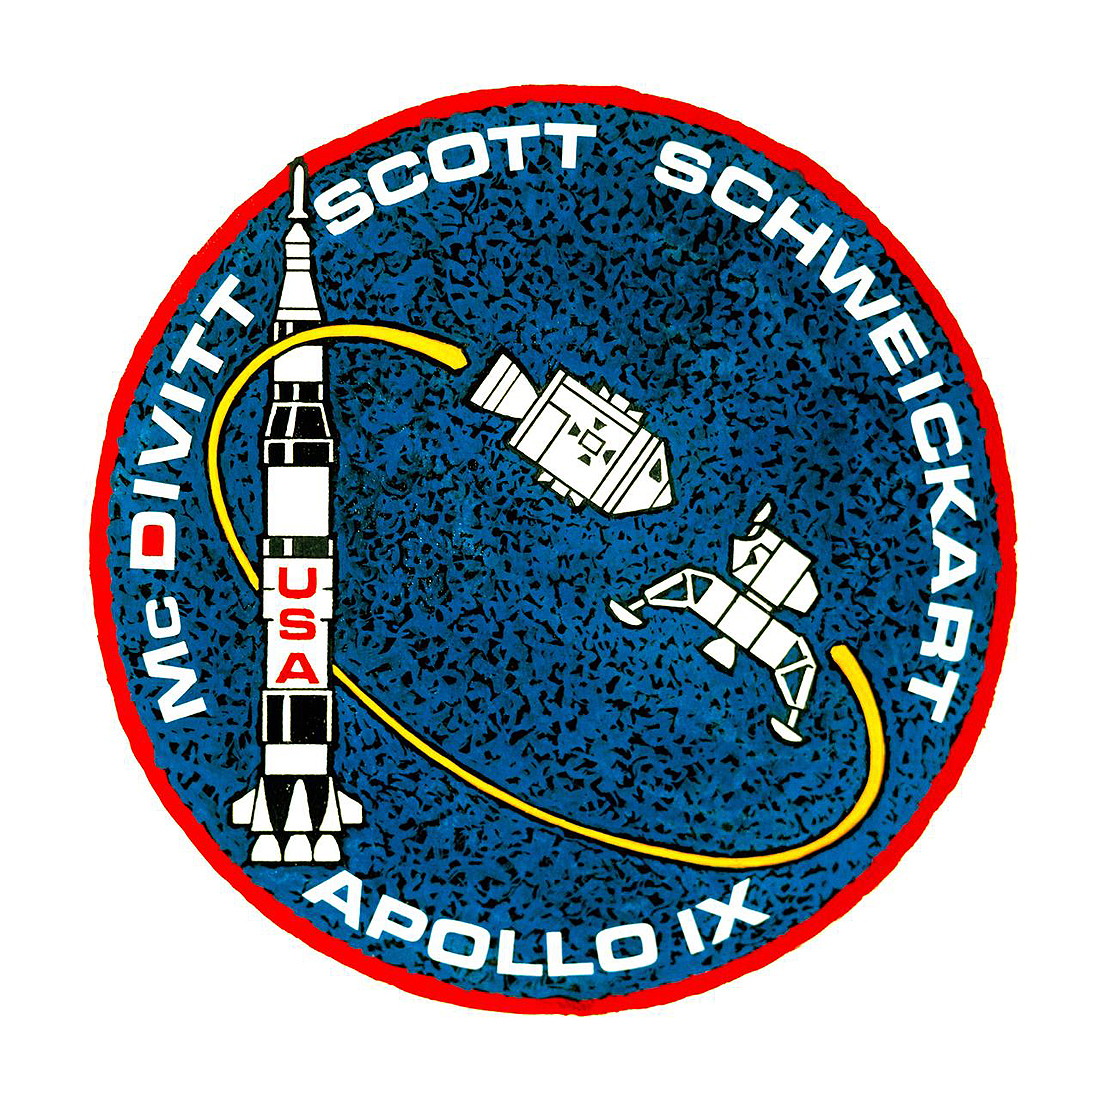 Apollo 9 patch McDivit Scott Schweickart